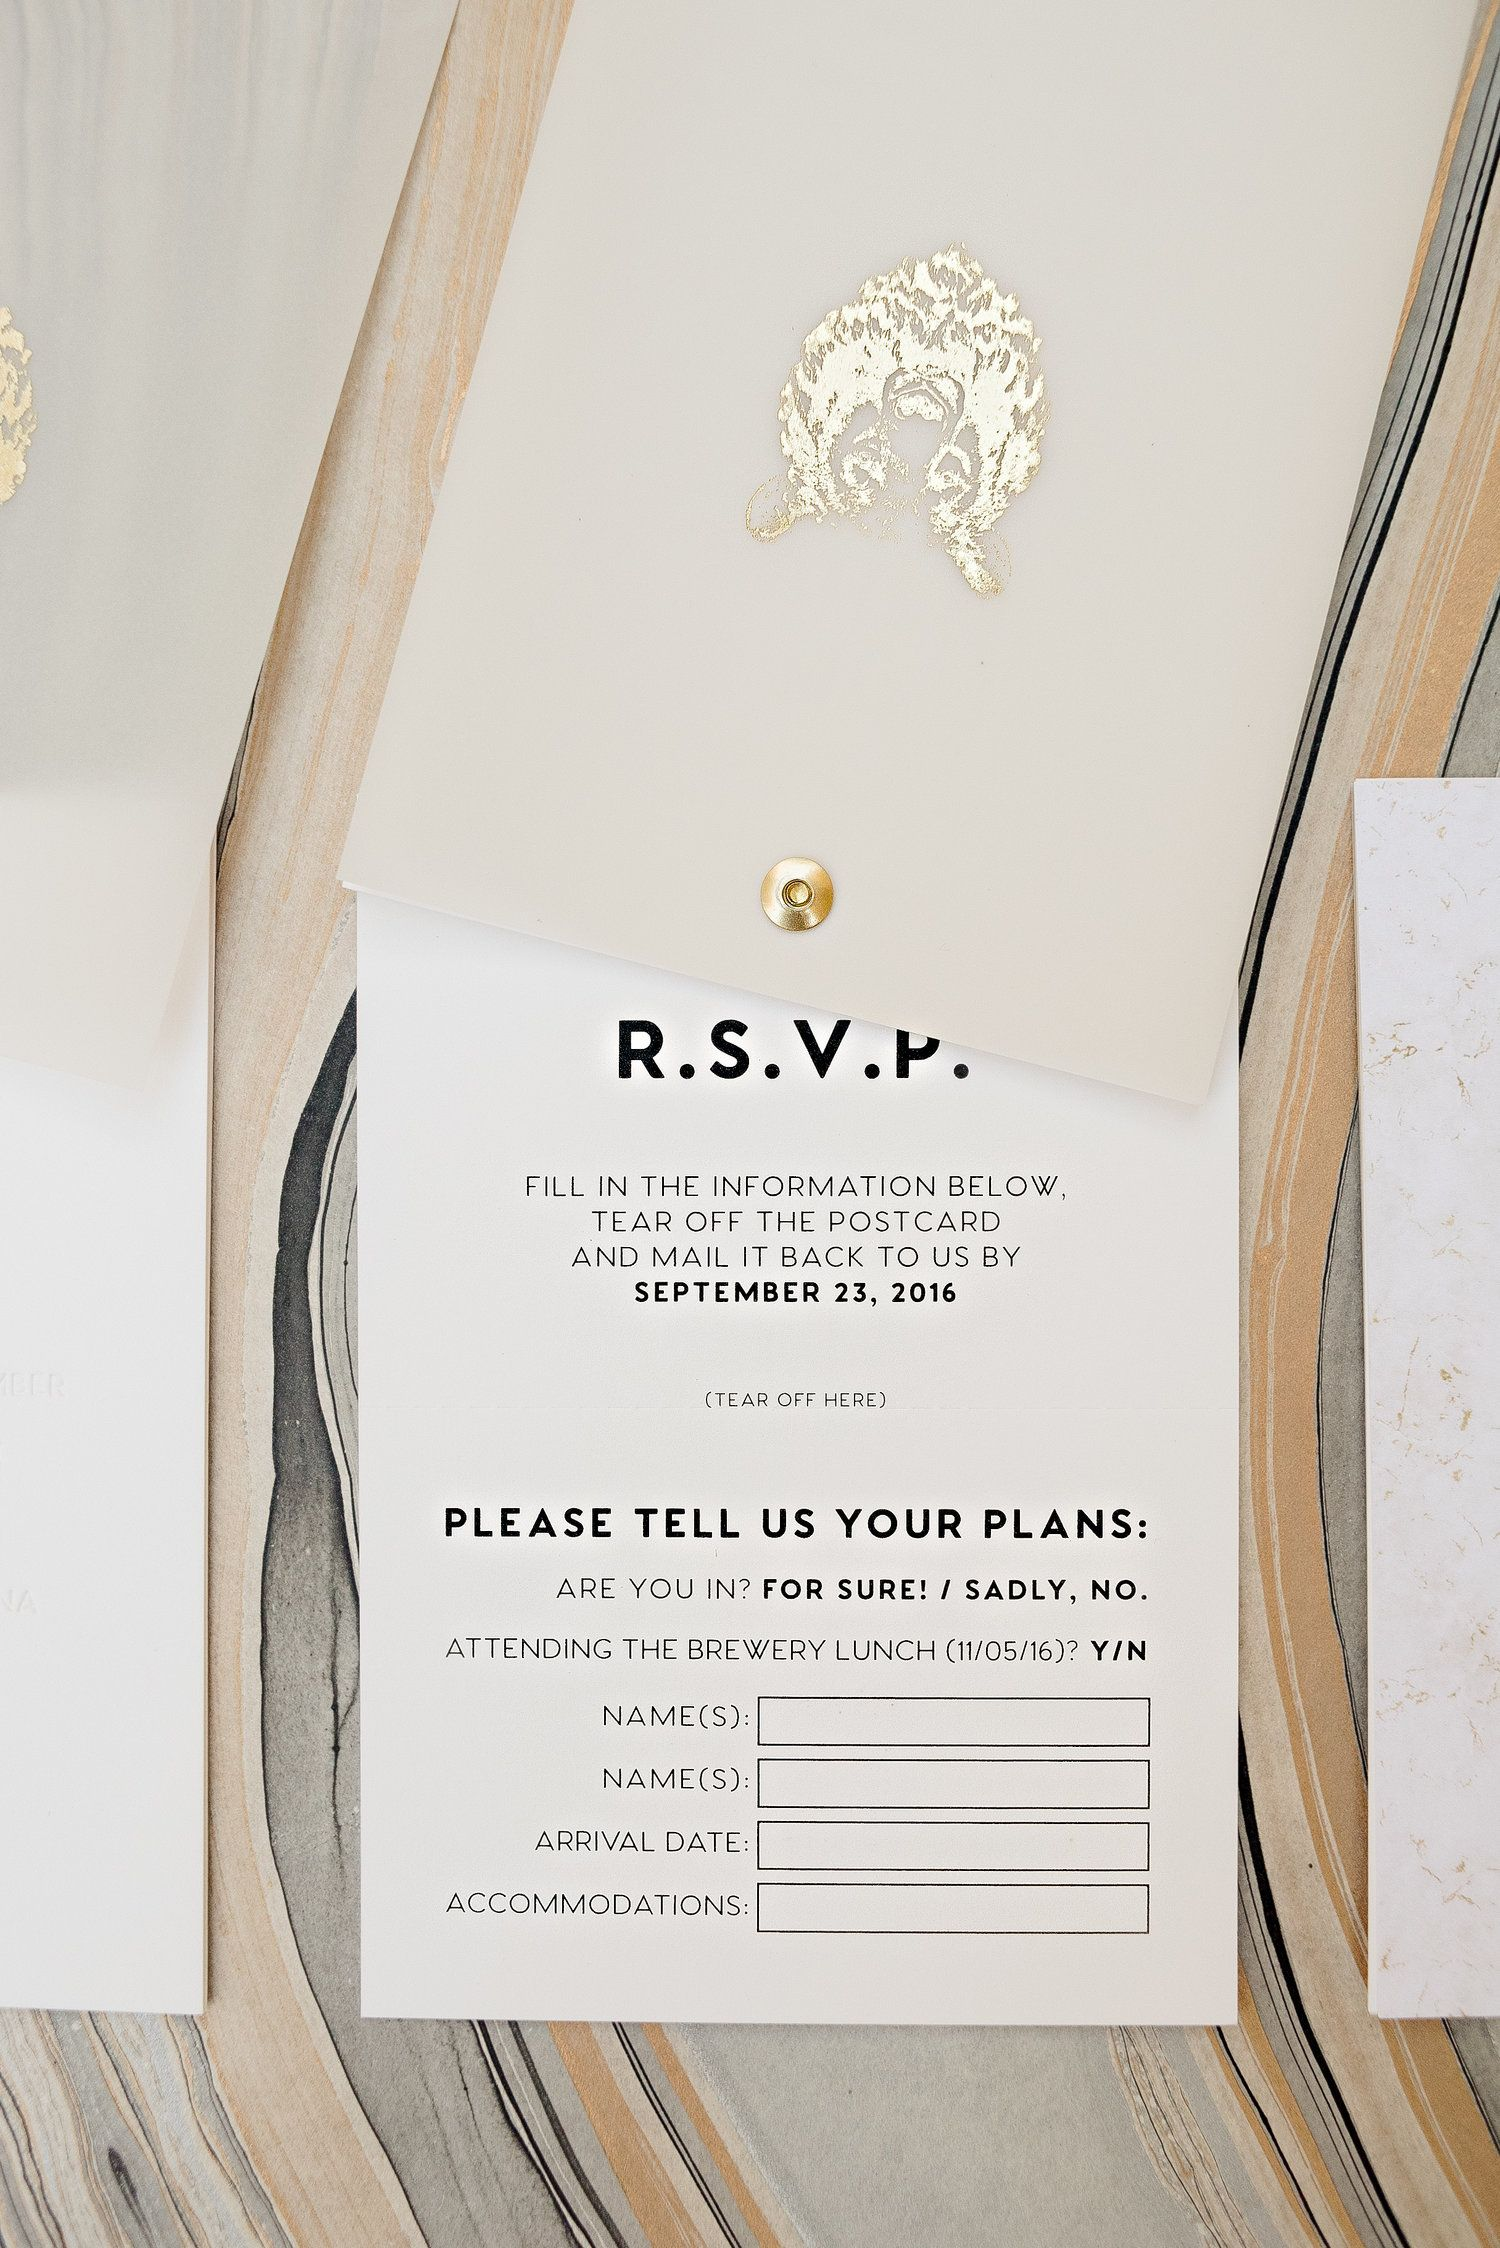 wedding invitation sample by email%0A Twist rotating wedding invitation suite  gold foil logo on vellum cover   blind emboss